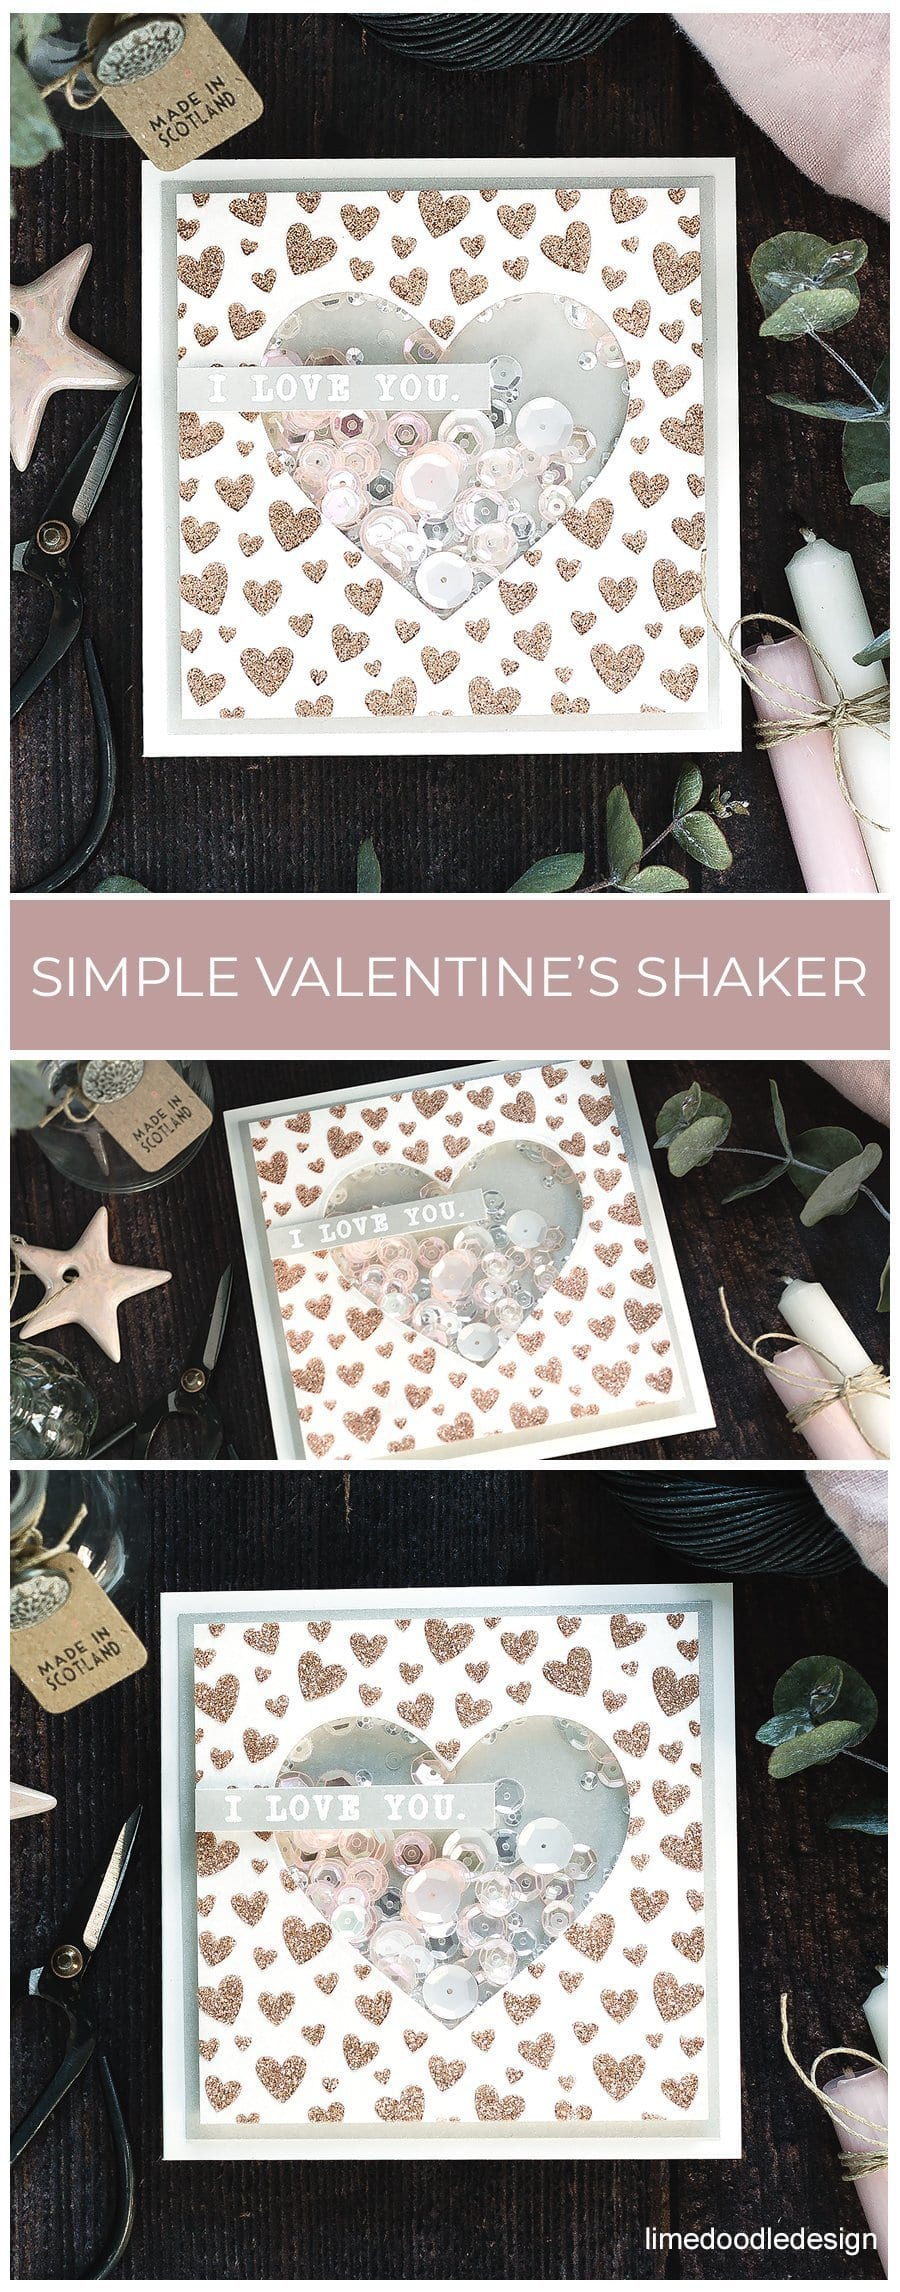 Simple Valentine's shaker card. Handmade card by Debby Hughes using supplies from Simon Says Stamp. Find out more here: https://limedoodledesign.com/2019/01/video-simple-valentines-shaker-card-blog-hop-giveaway/